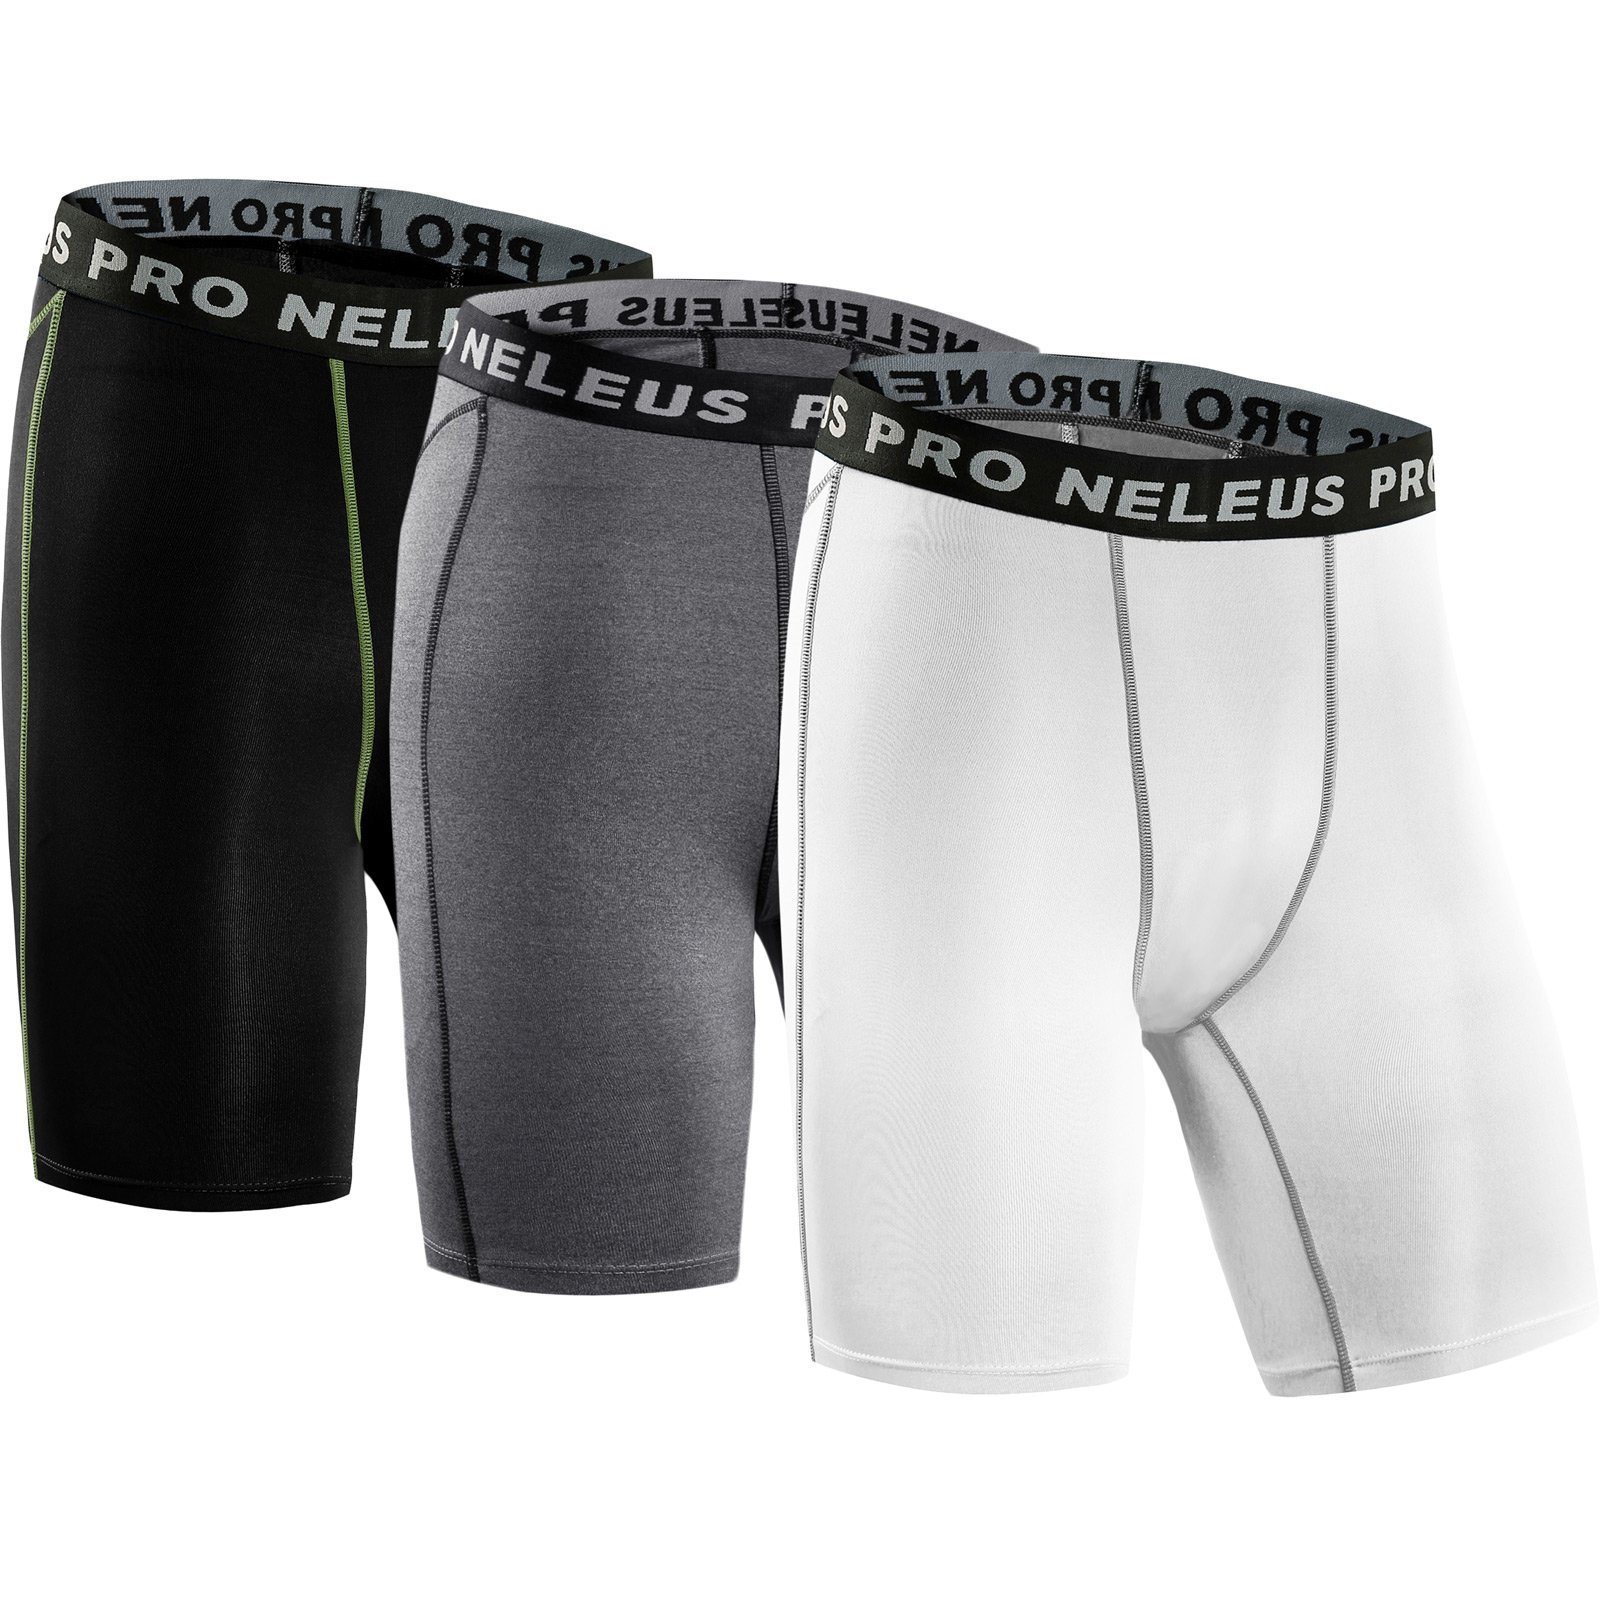 Neleus Men's 3 Pack Compression Short,047#,Black,Grey,White,S by Neleus